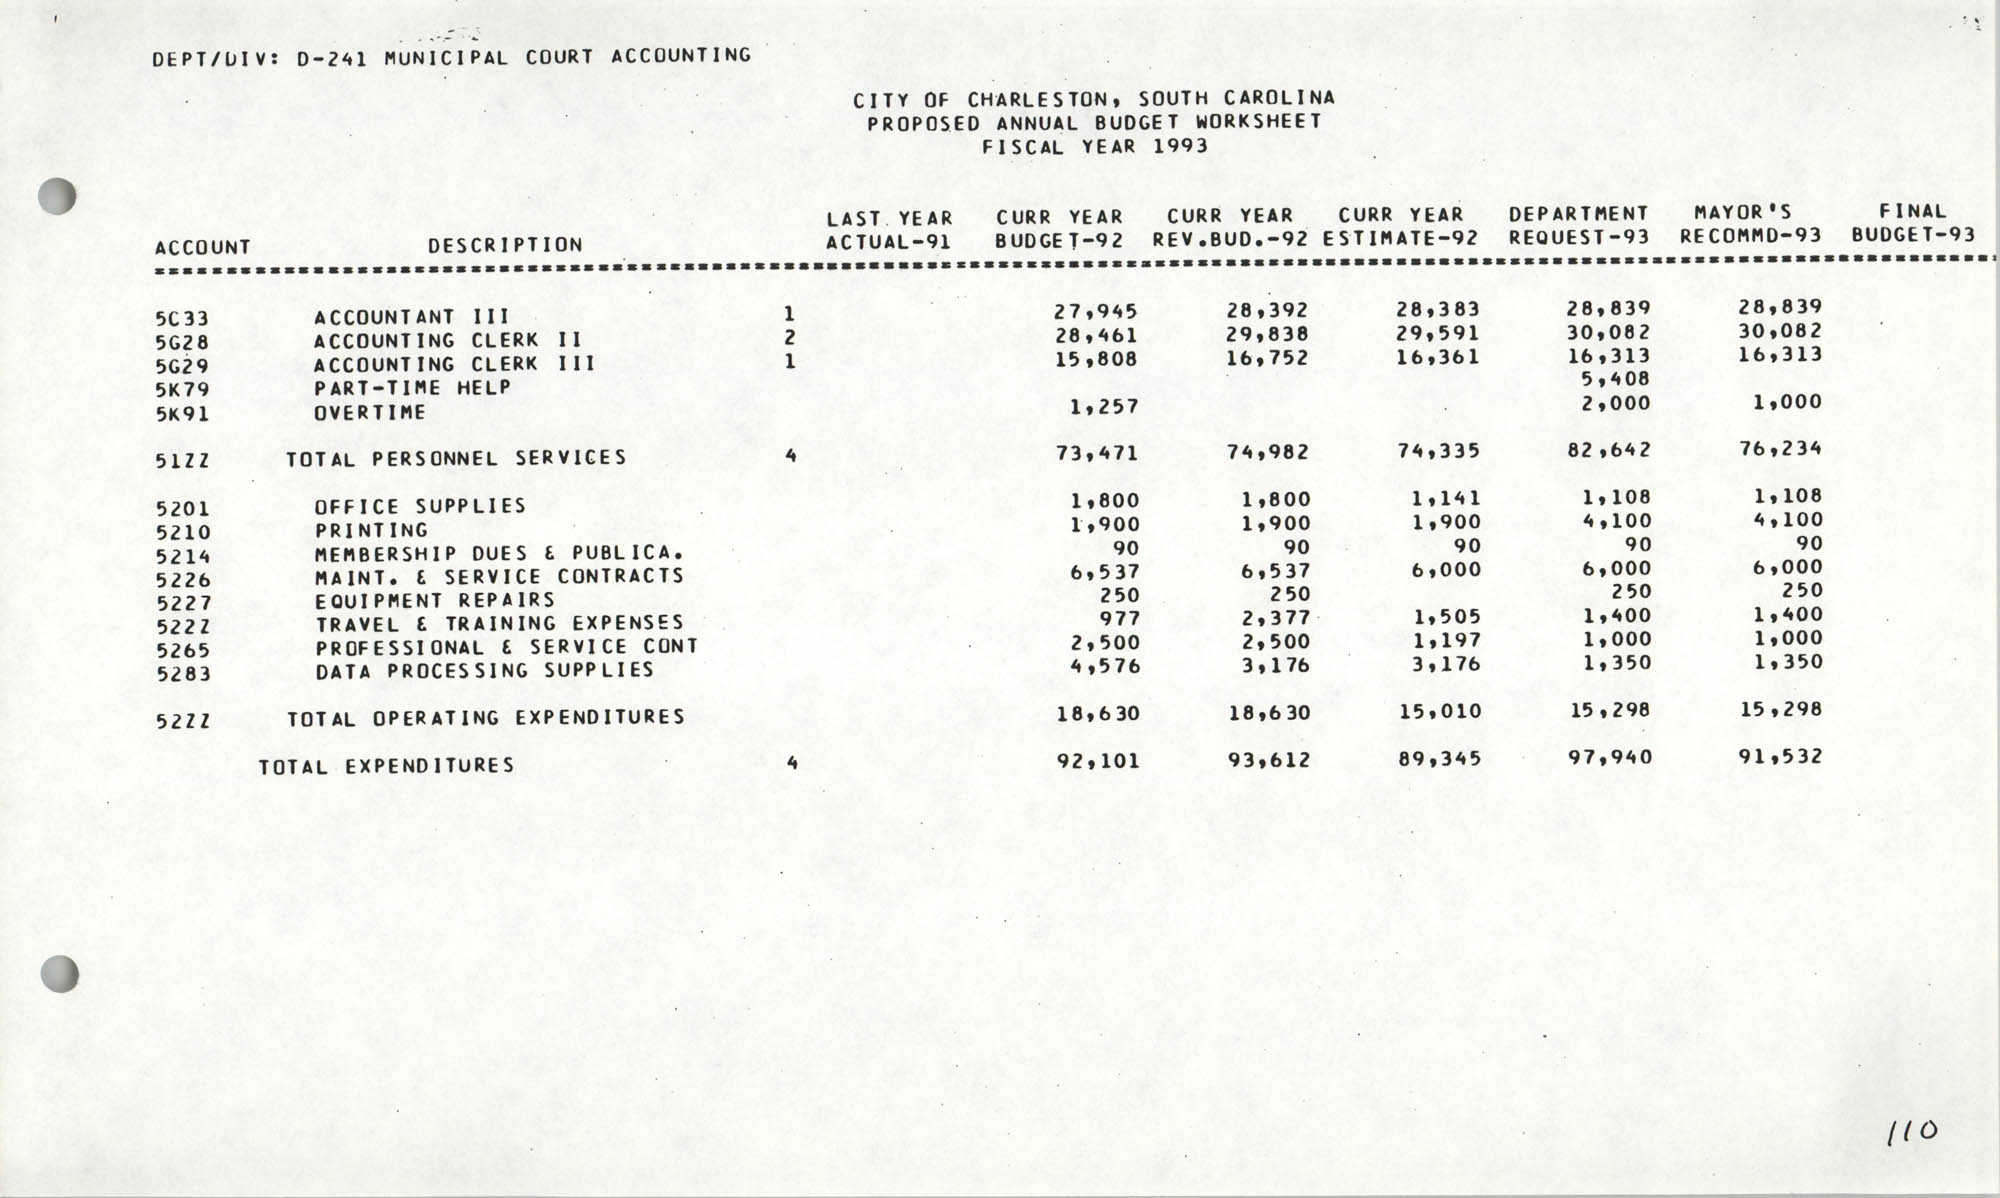 The City Council of Charleston, South Carolina, 1993 Budget, Page 110